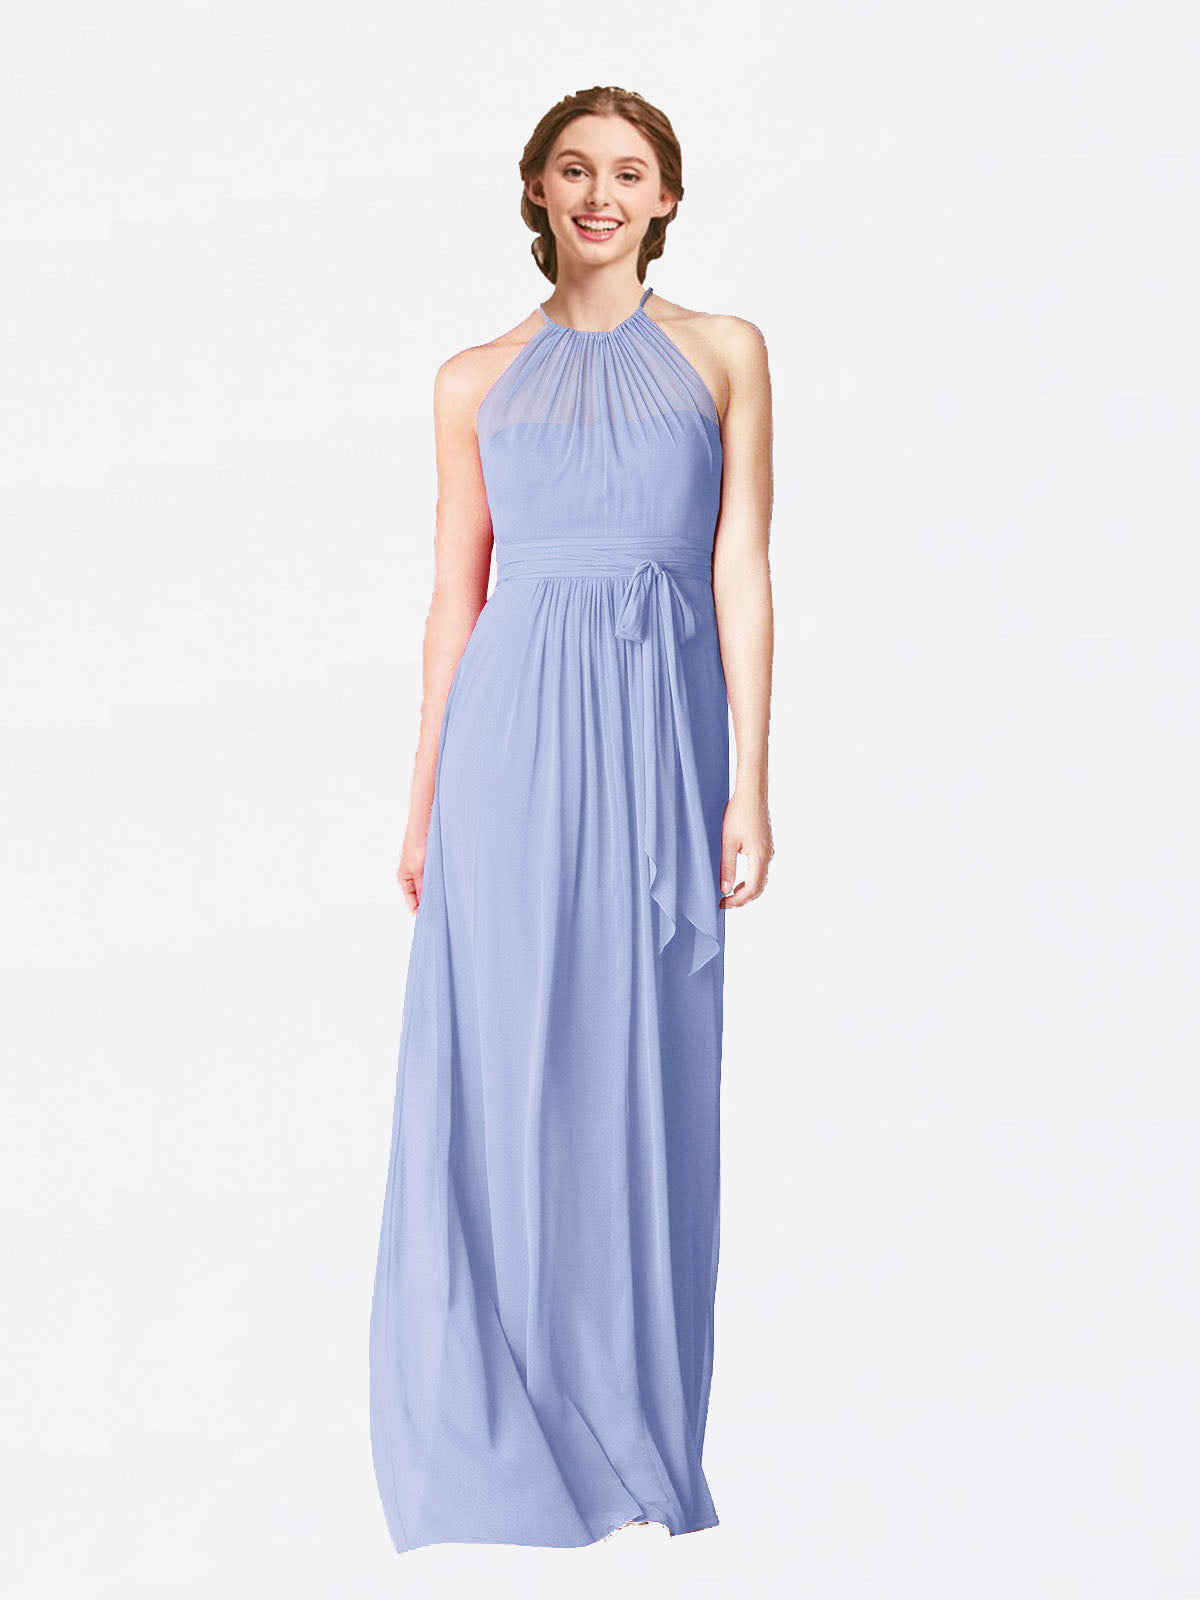 Long A-Line Halter Sleeveless Lavender Chiffon Bridesmaid Dress Laura